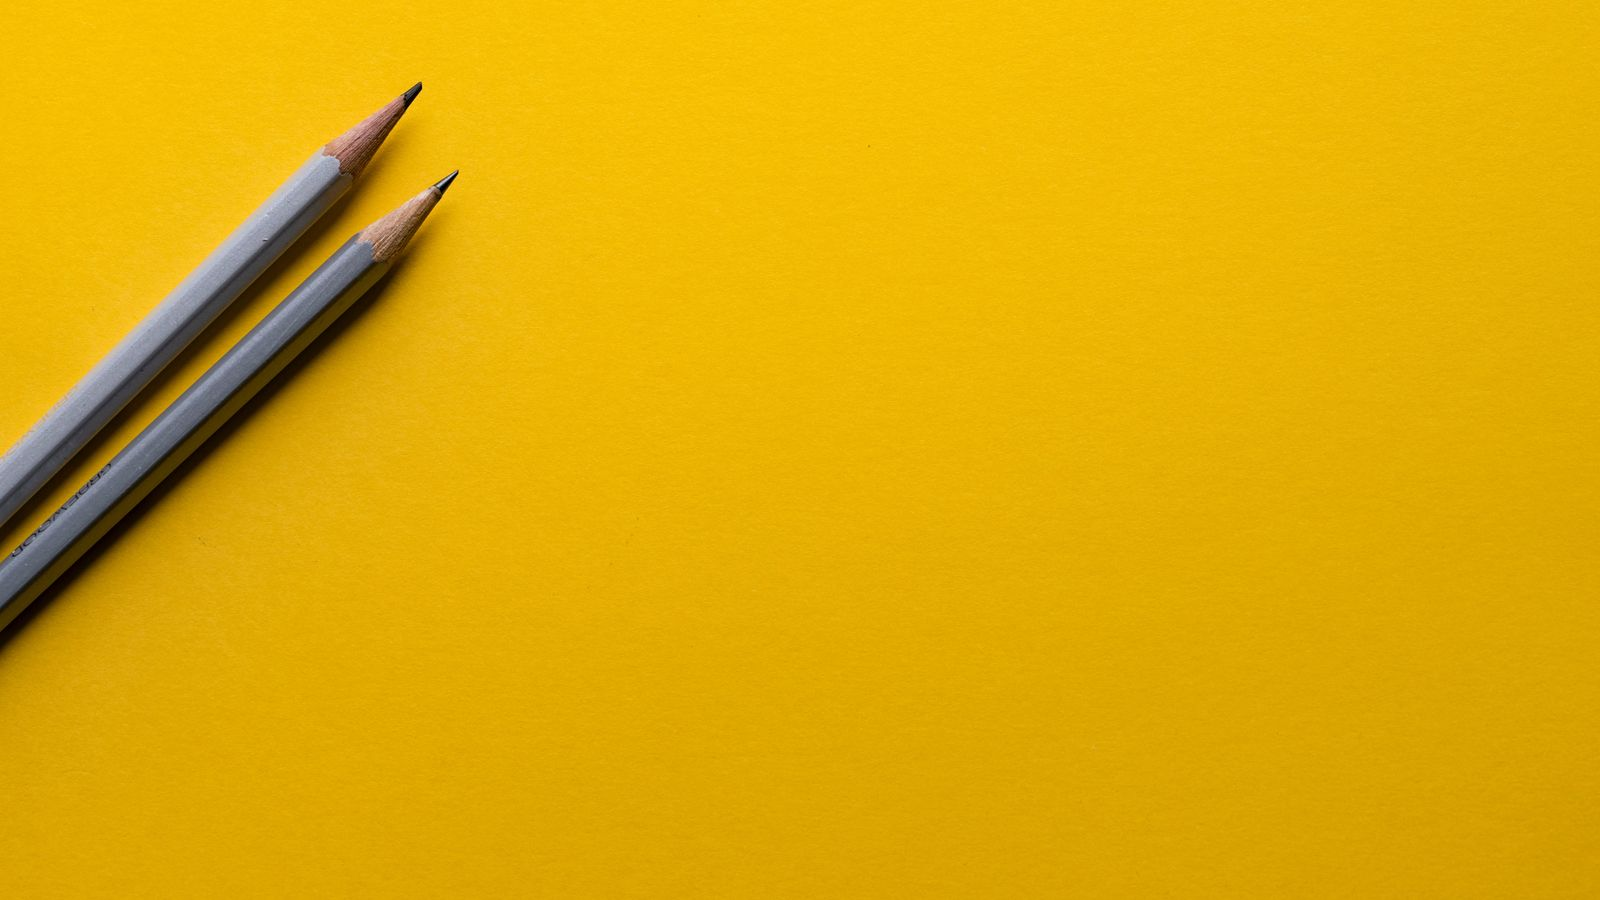 Image of 2 pencils on a yellow background